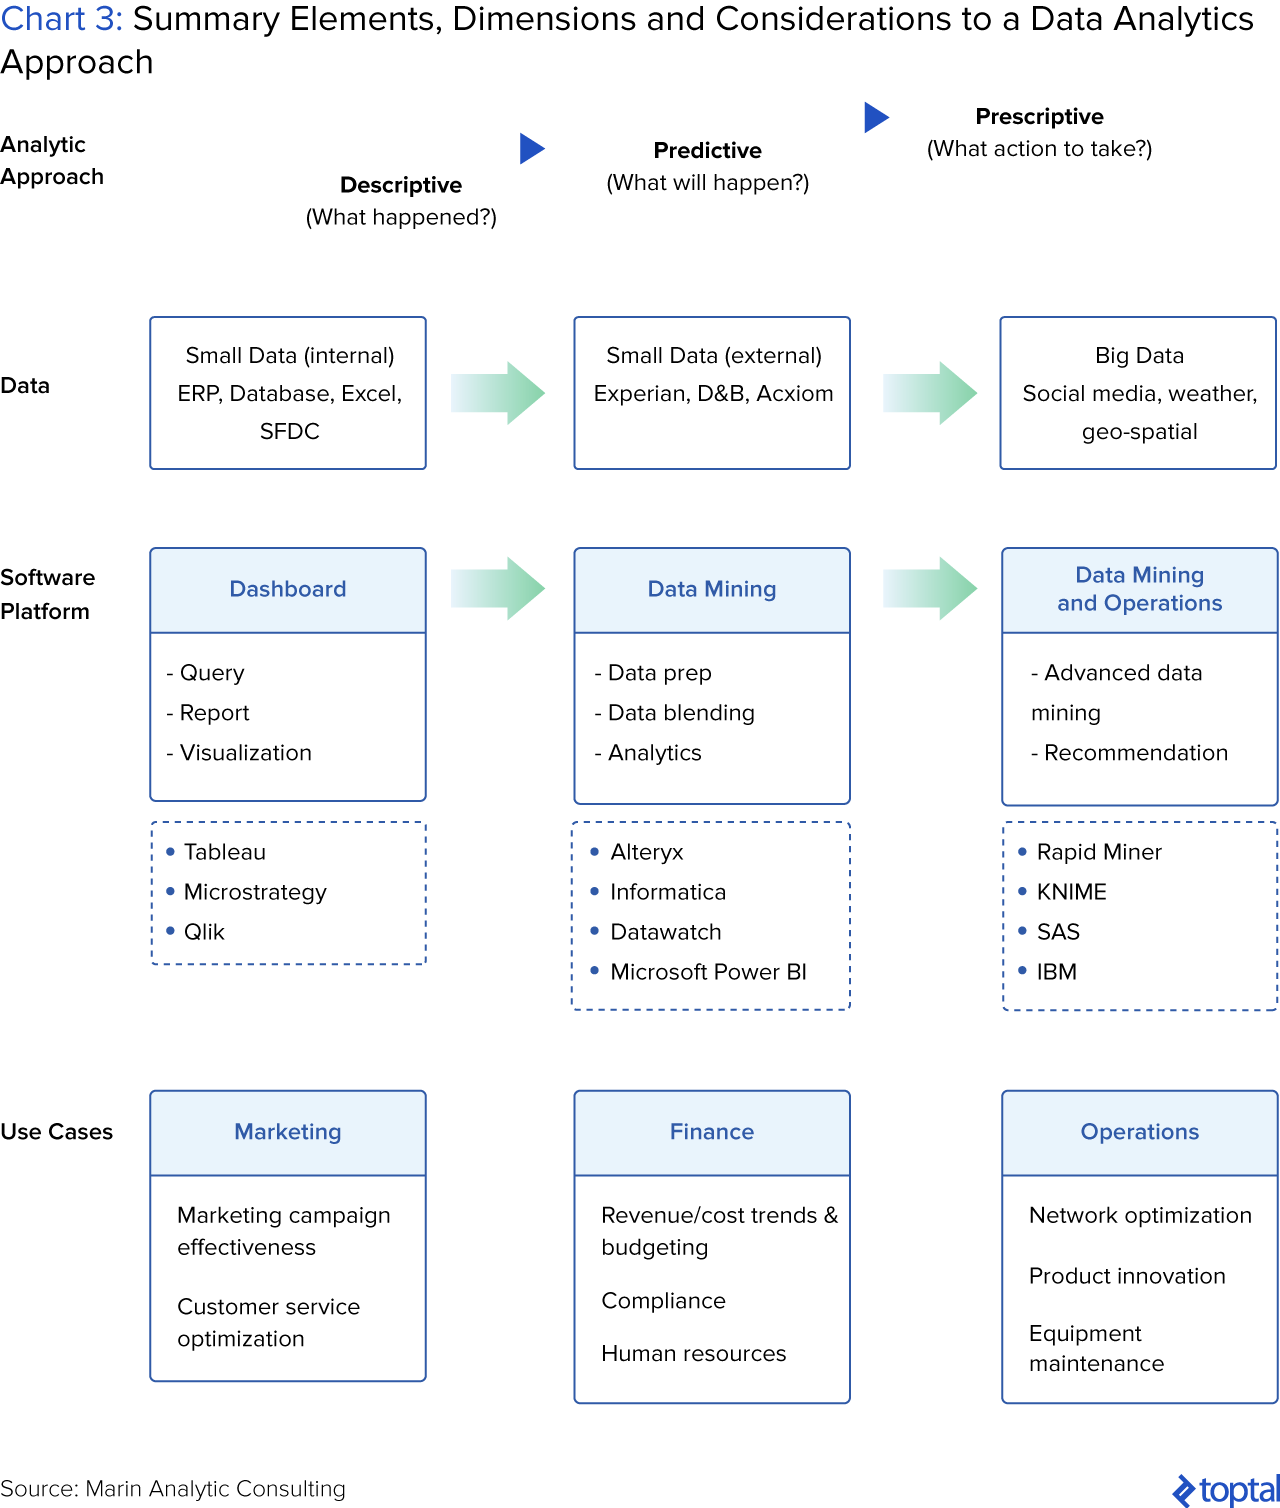 Chart 3: Summary Elements, Dimensions, and Considerations to a Data Analytics Approach